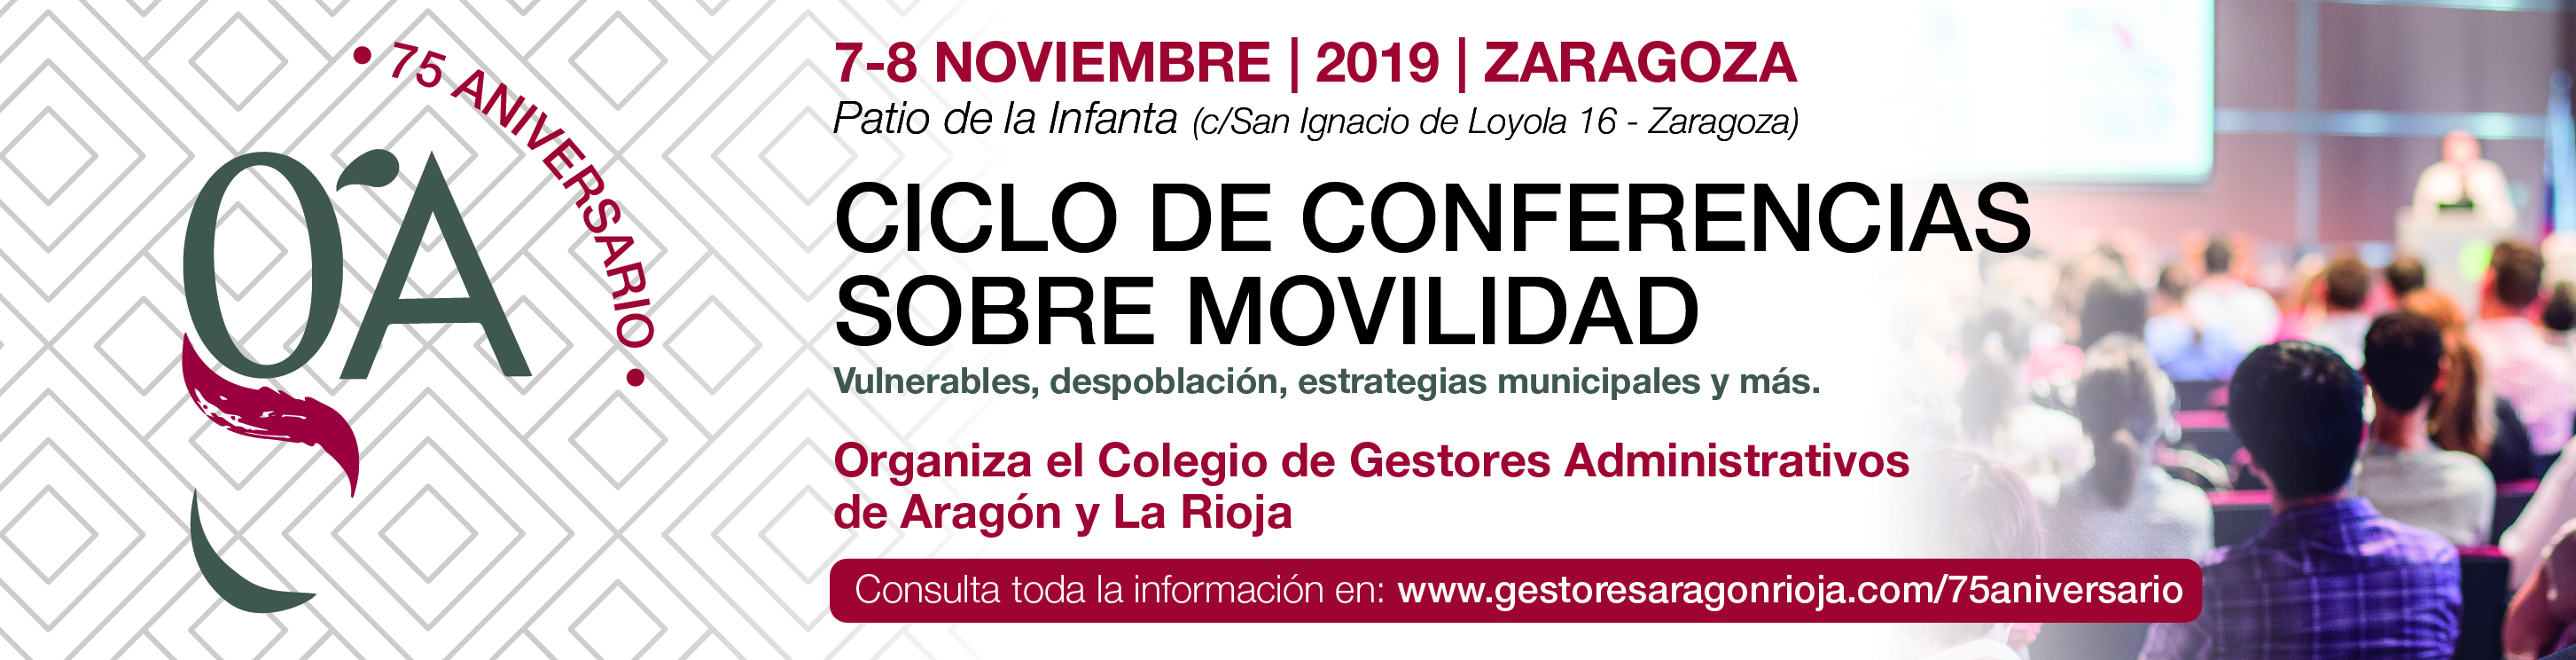 Faldón Conferencias